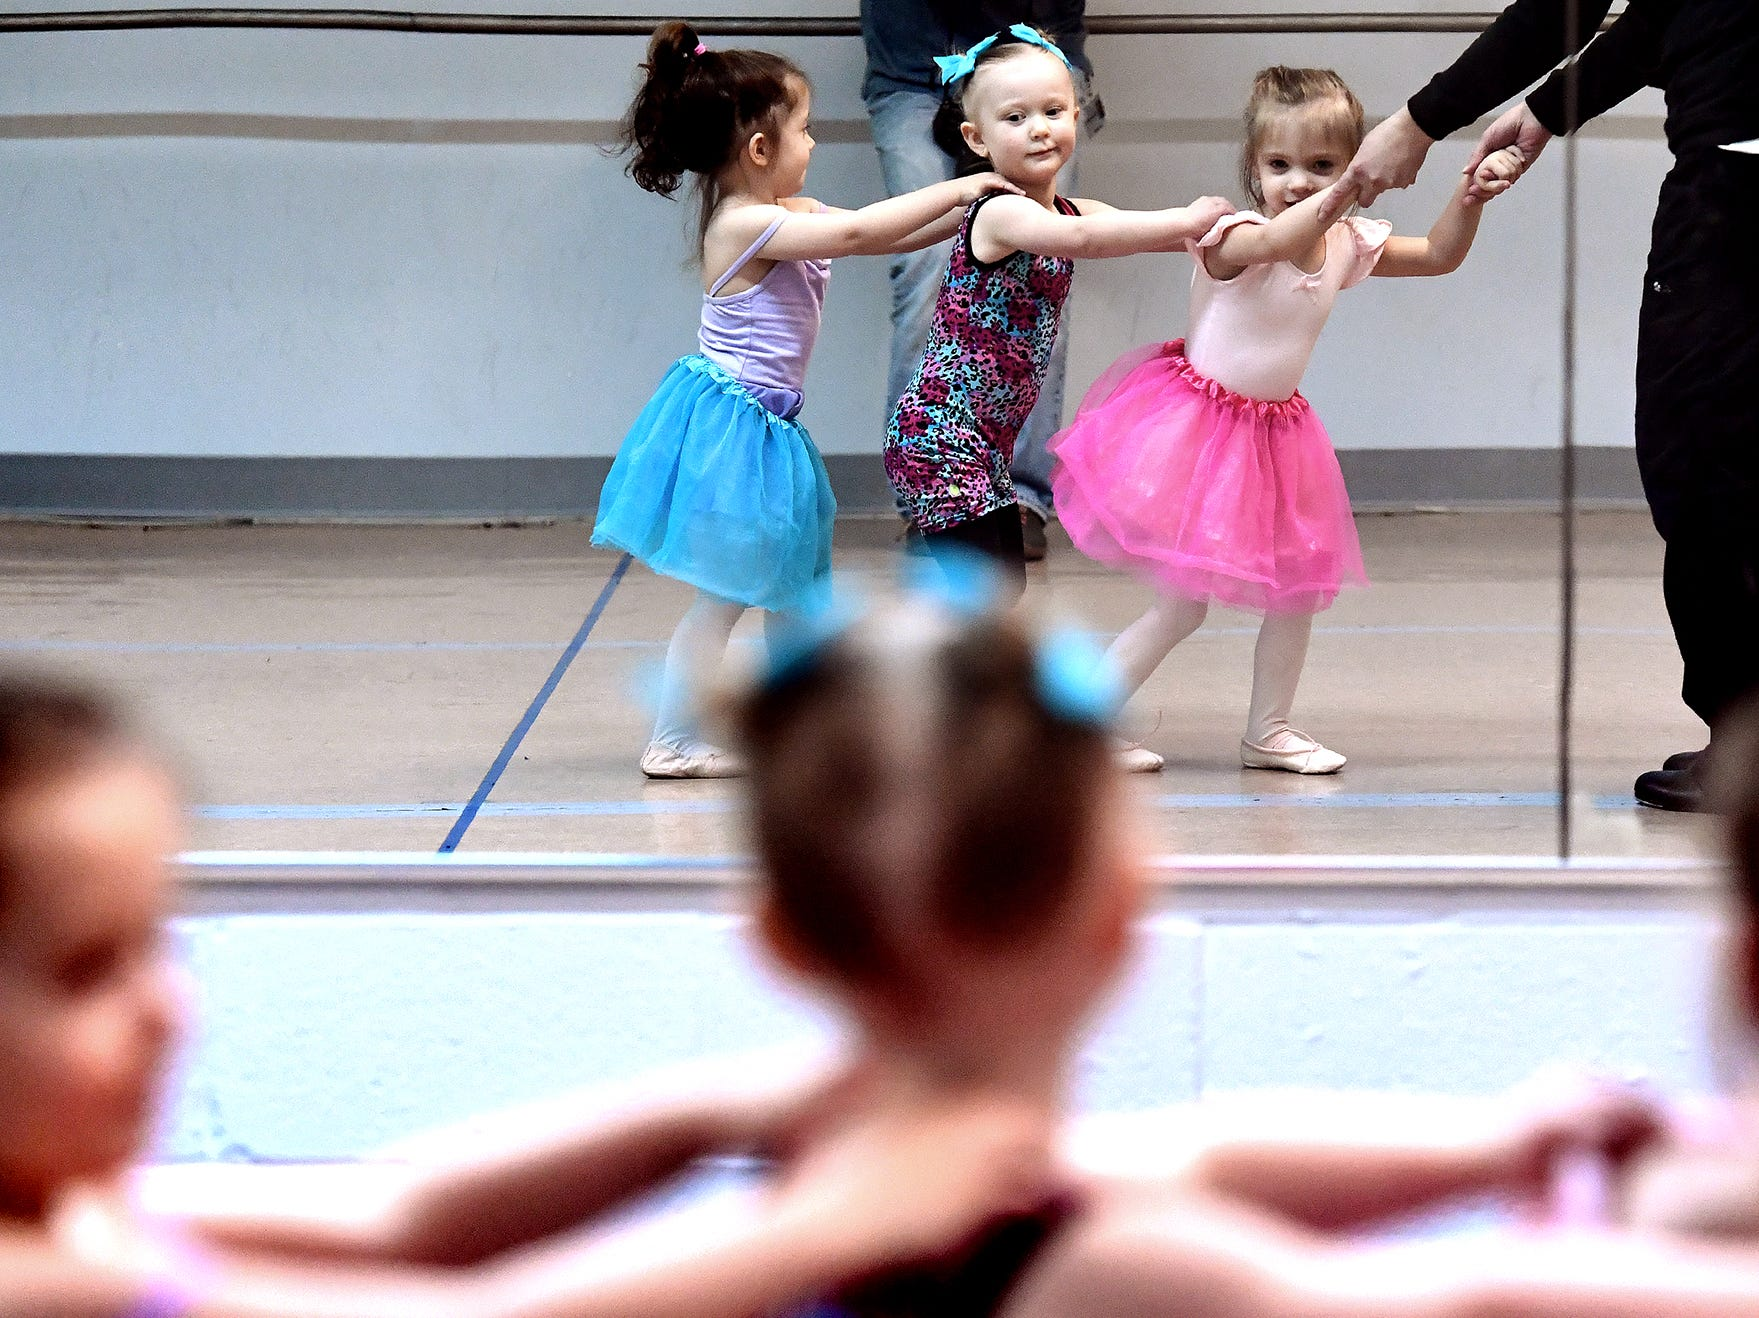 Children, from left, Gracie Higgins, 2, of York Haven; Alanina Byrne, 2, of West York, and Aundrea Baughman, 3, of Dallastown, form a train during the Twinkle Babies class with instructor Niki Zengerly at Greater York Dance Thursday, April 4, 2019. The four-week program, for children aged 2 to 4, is part of the Twinkle Star Dance Program for early childhood dancers. Bill Kalina photo